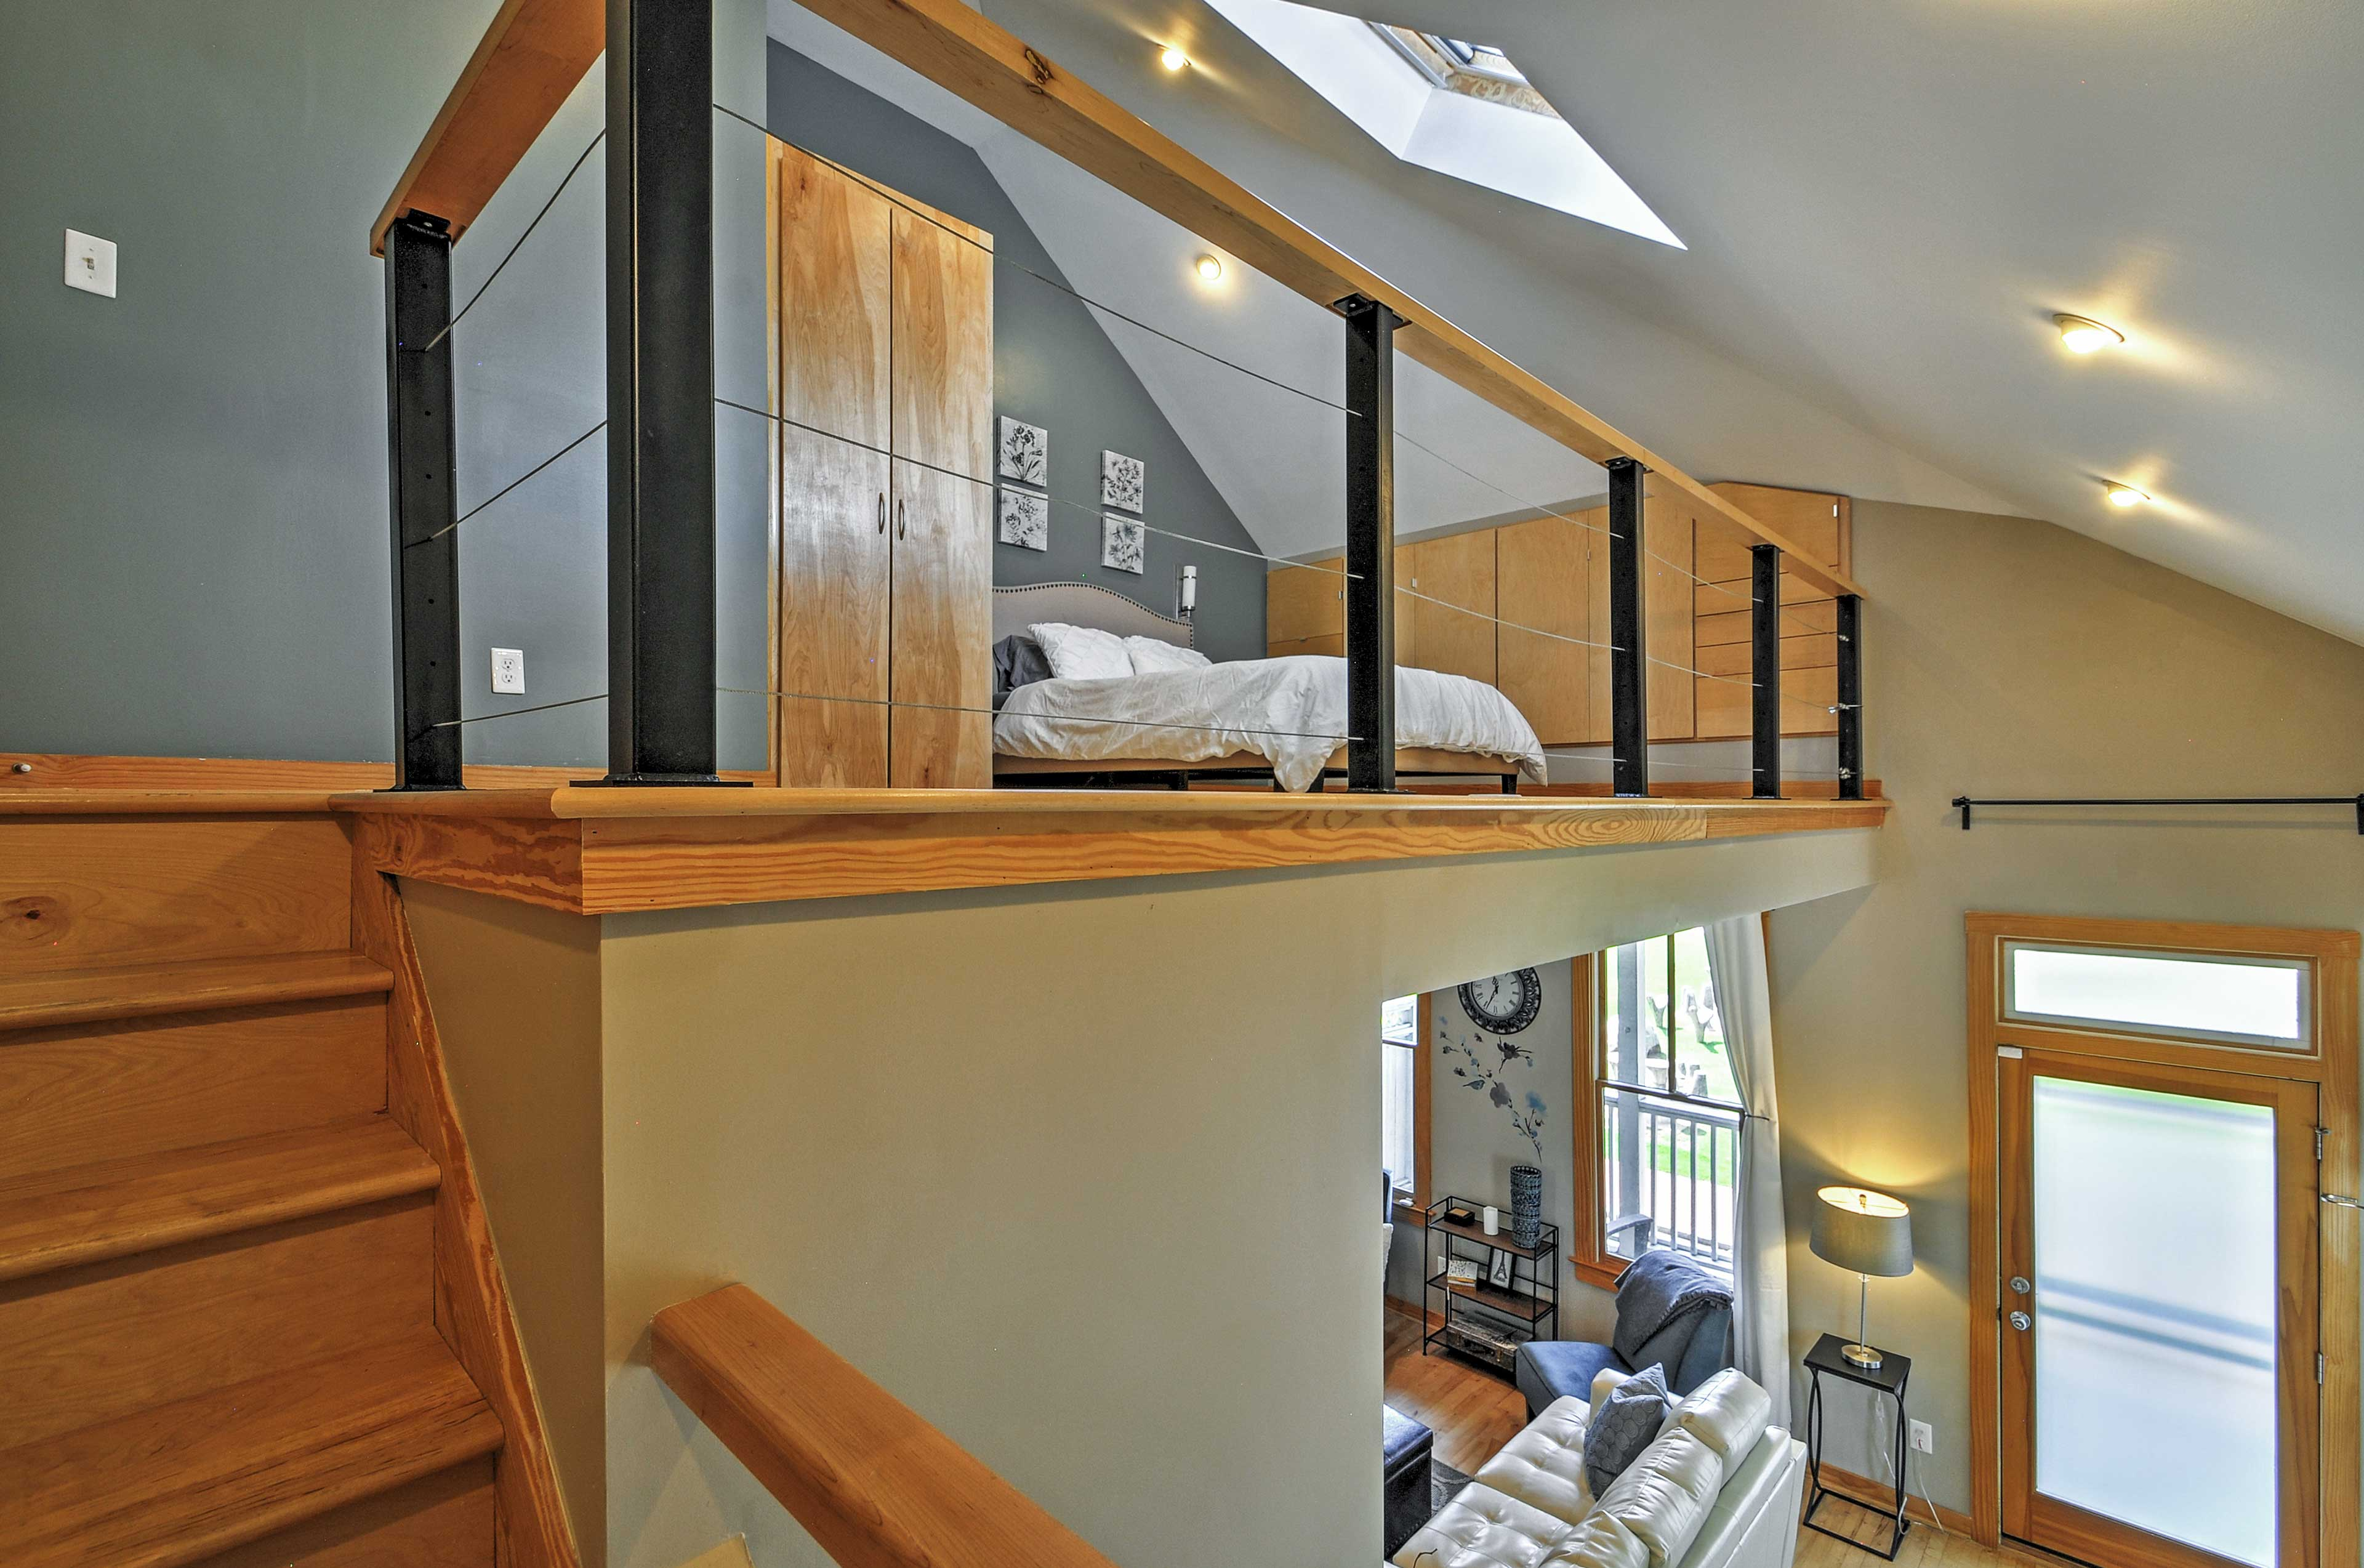 Retreat to rest in the lofted bedroom.